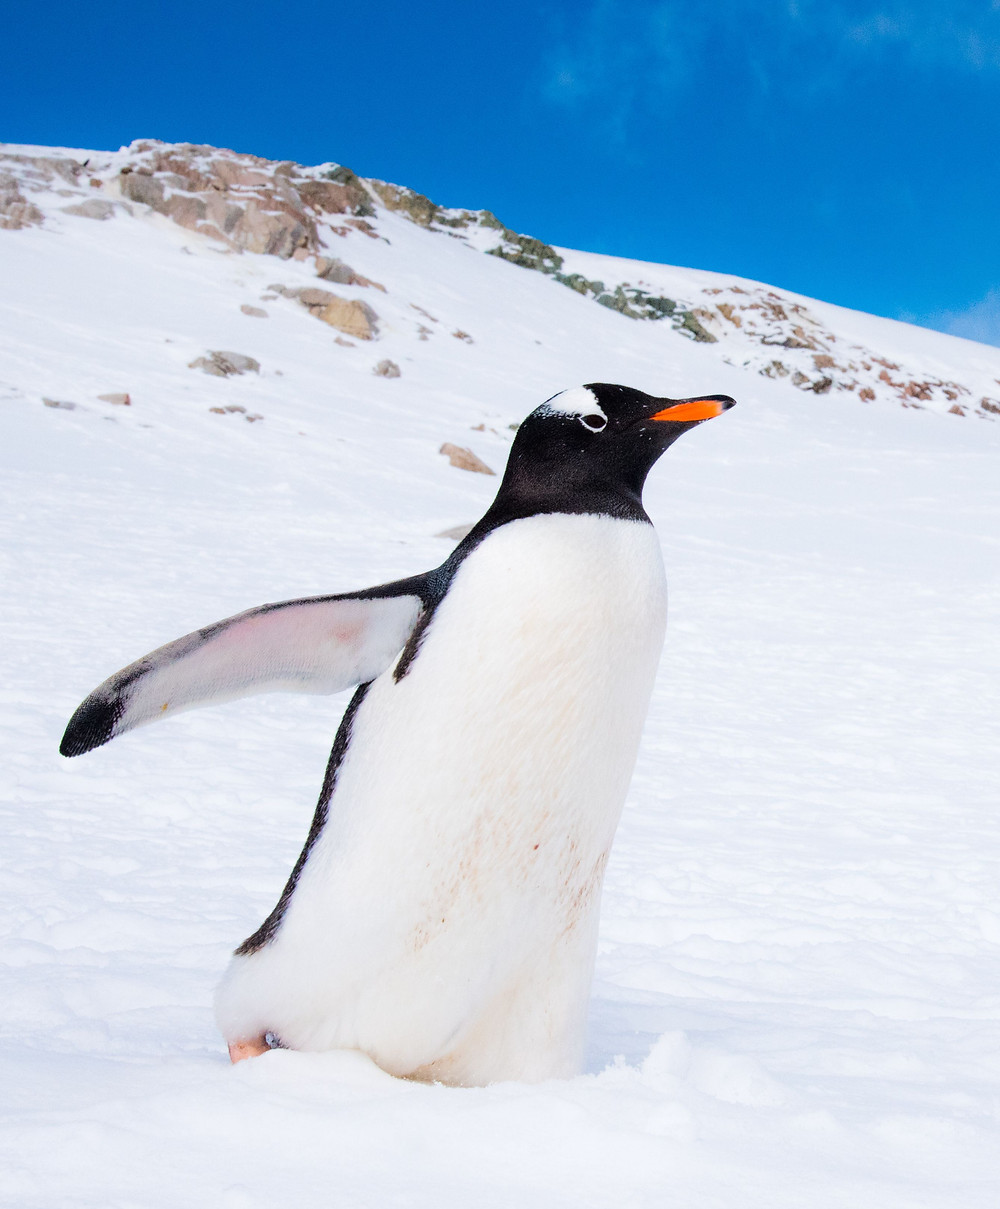 Working abroad learnings from Antarctica